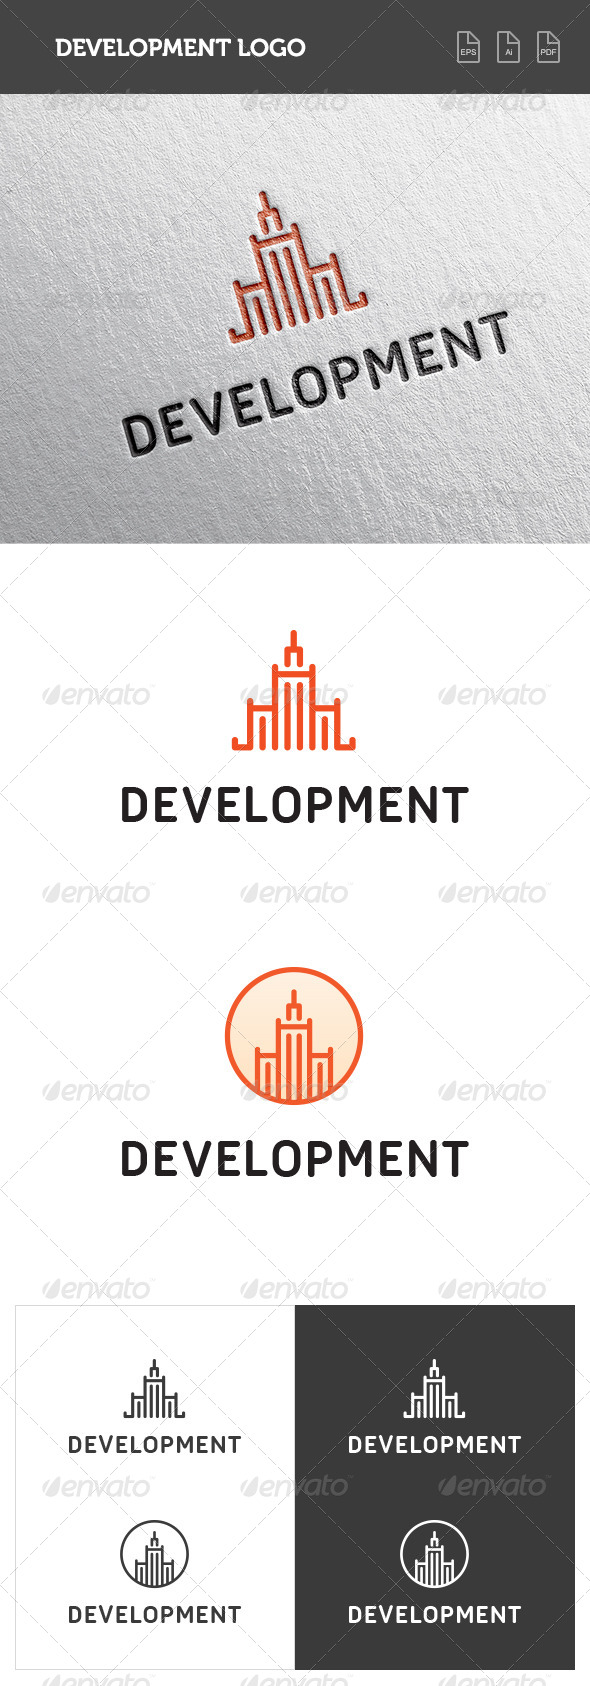 GraphicRiver Development Logo 8435973